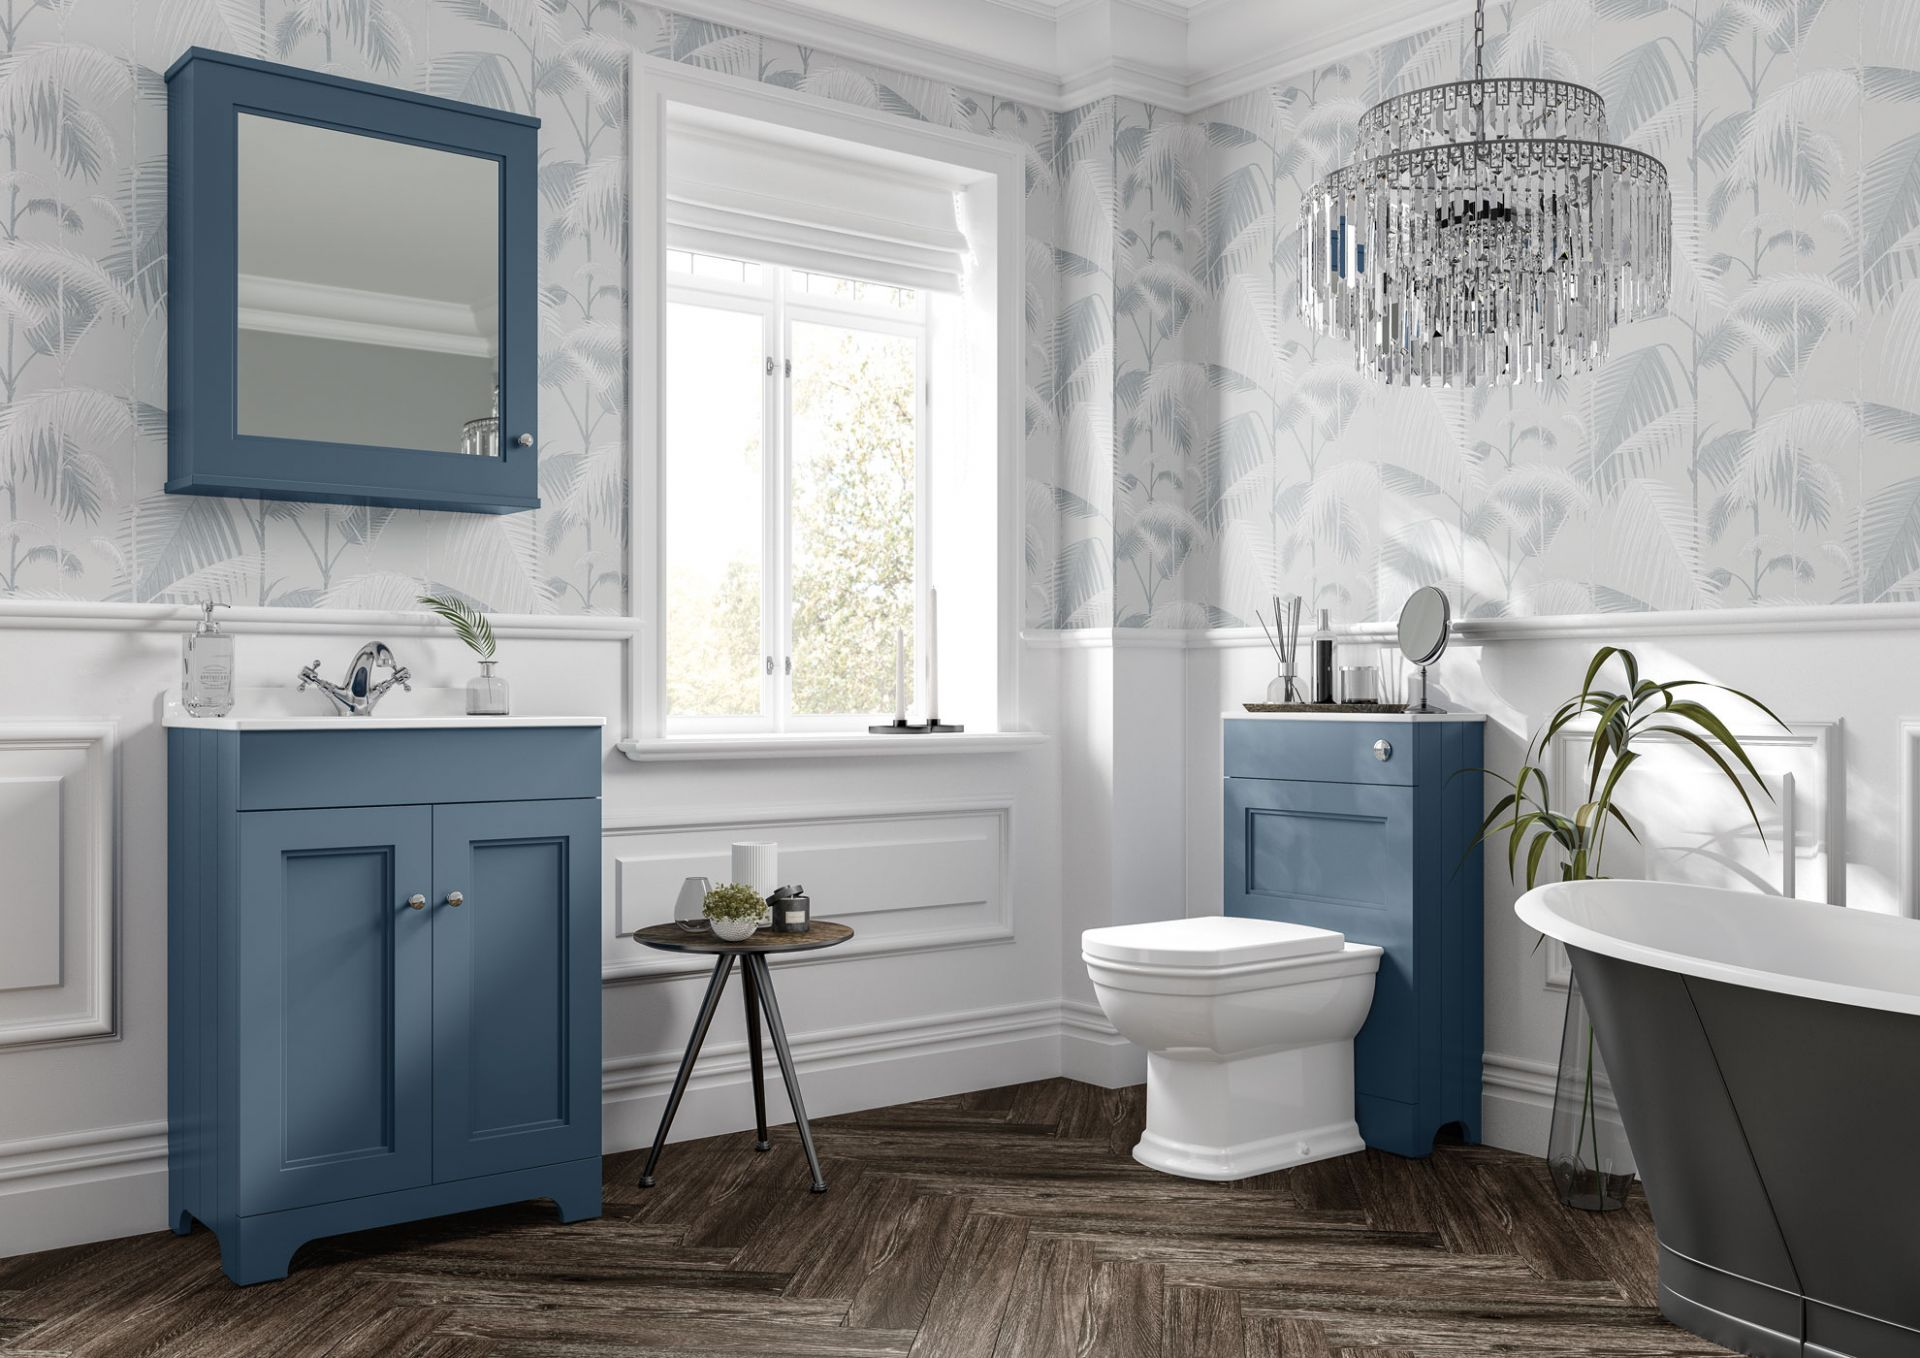 Bathrooms Dublin | Bathroom Showrooms & Renovations Experts - bathroom ideas dublin